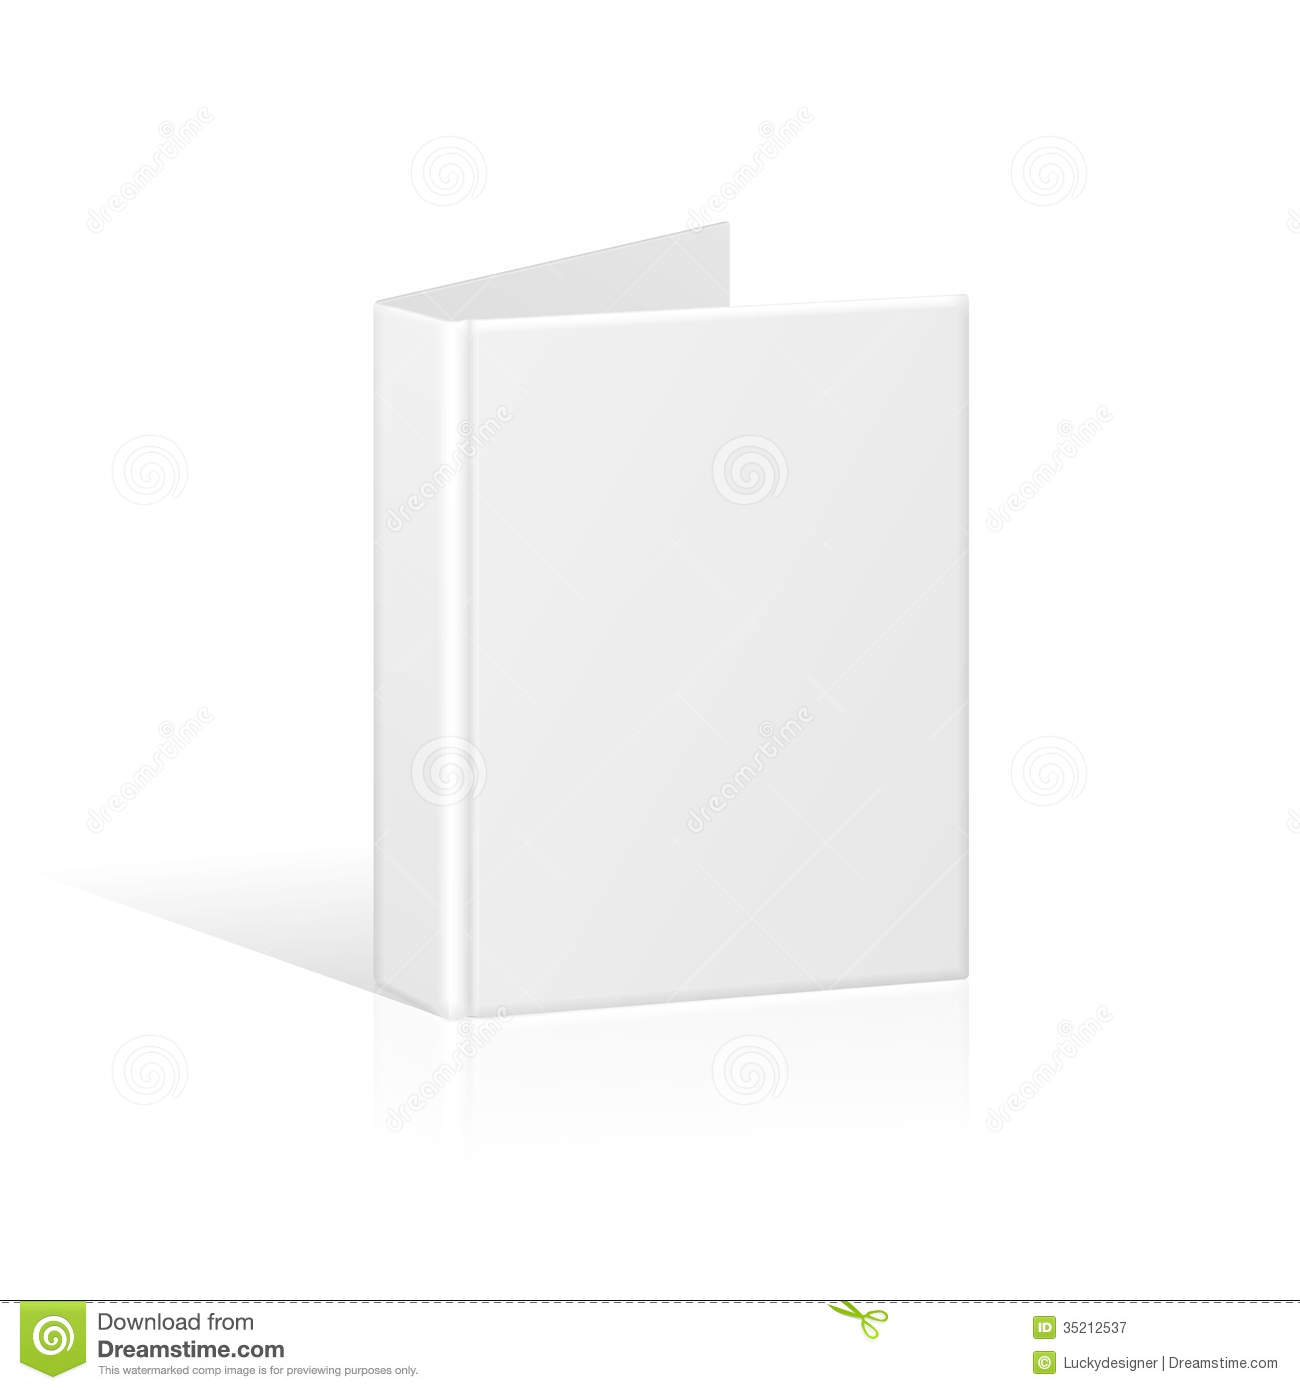 Book Cover Template Eps ~ Blank book cover binder or folder template royalty free